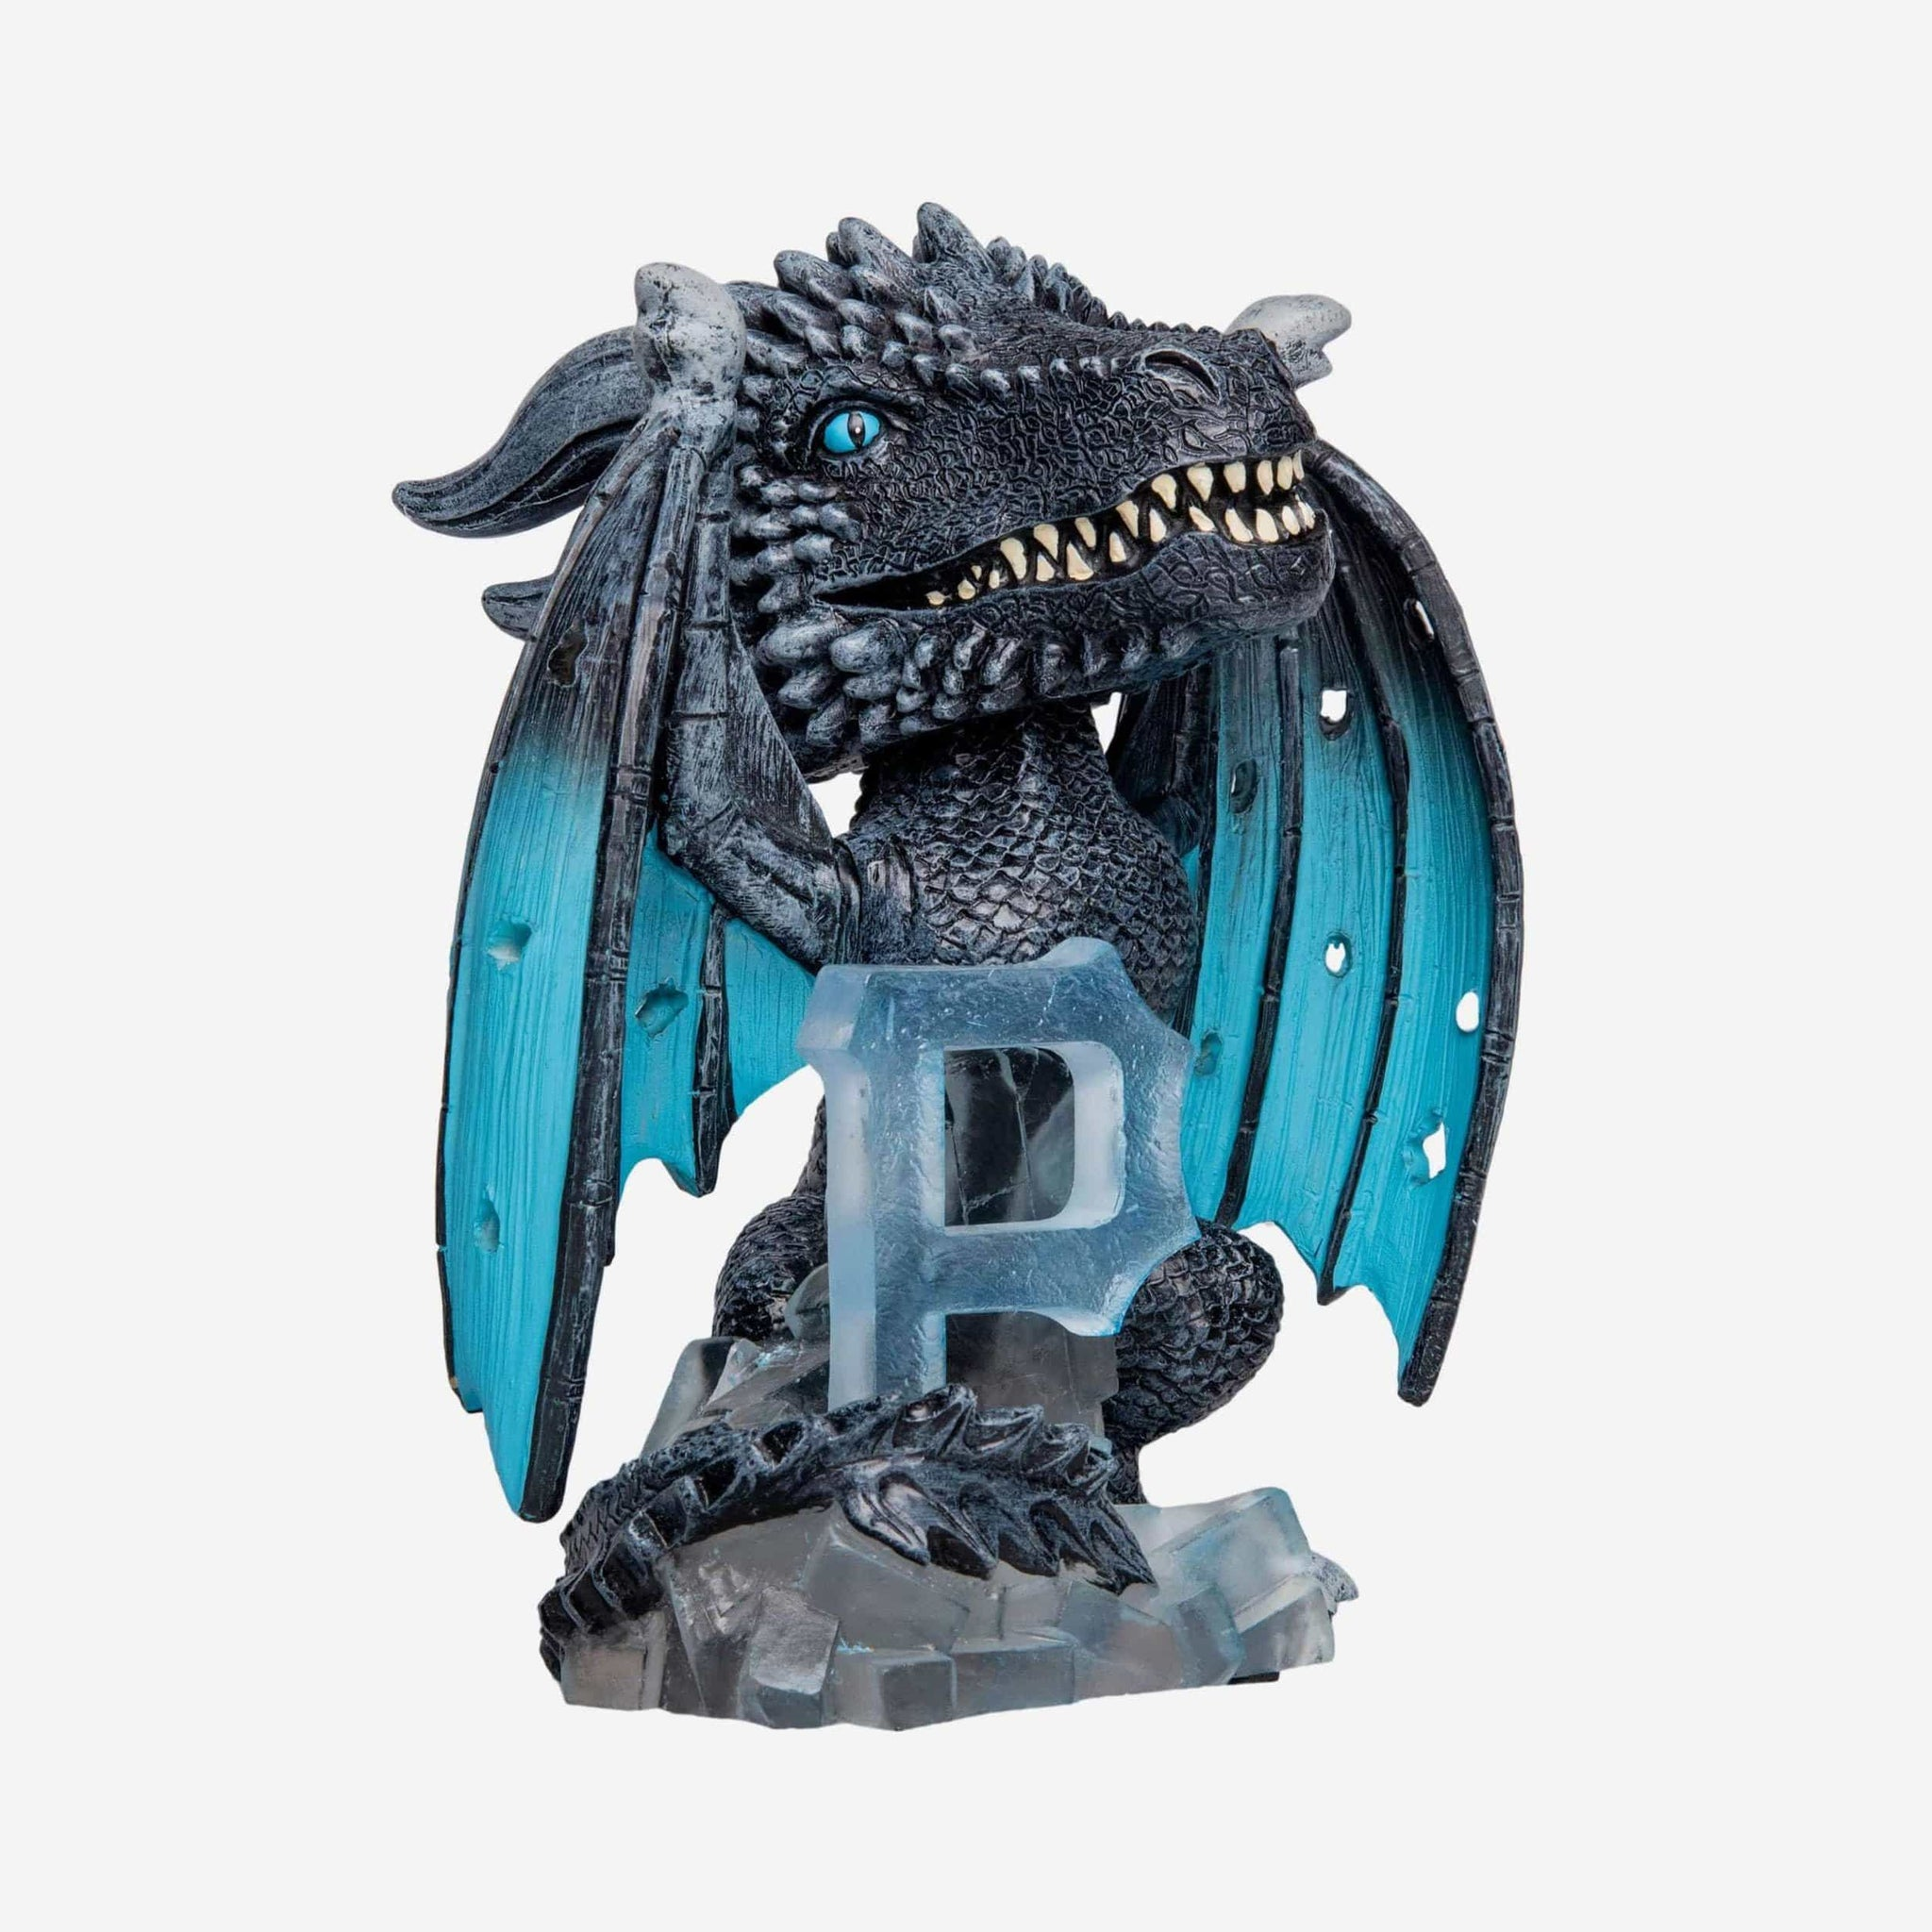 Pittsburgh Pirates Game Of Thrones Ice Dragon Bobblehead FOCO - FOCO.com